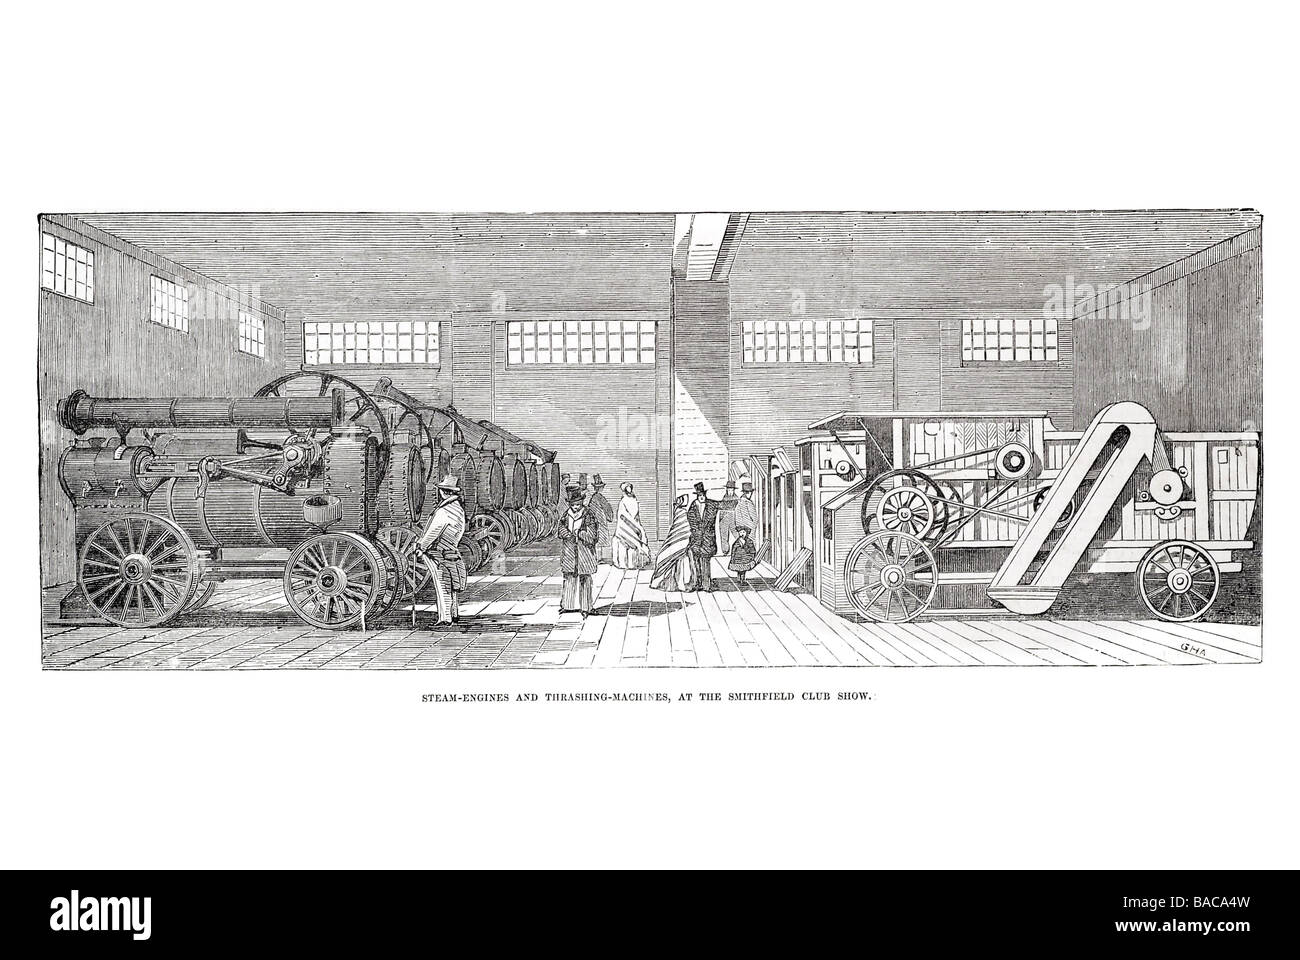 steam engines and thrashing machines at the smithfield club show 1854 - Stock Image